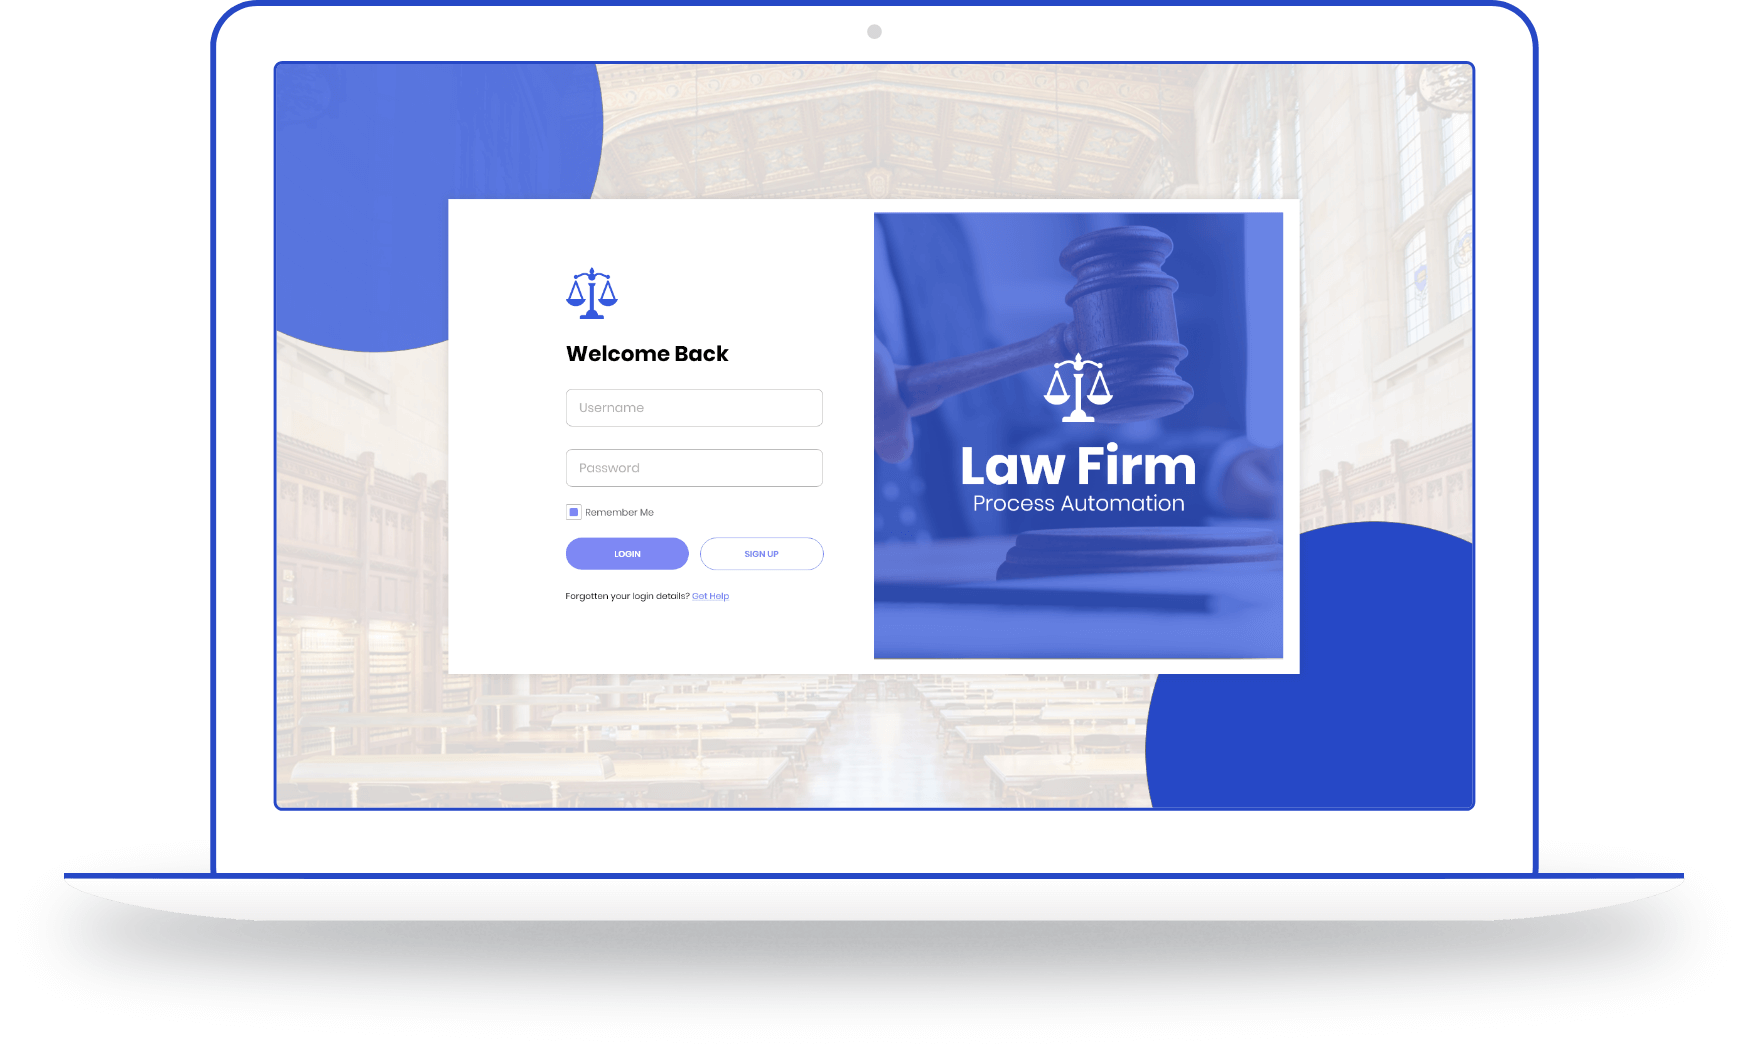 Law Firm Process Automation Laptop Mockup